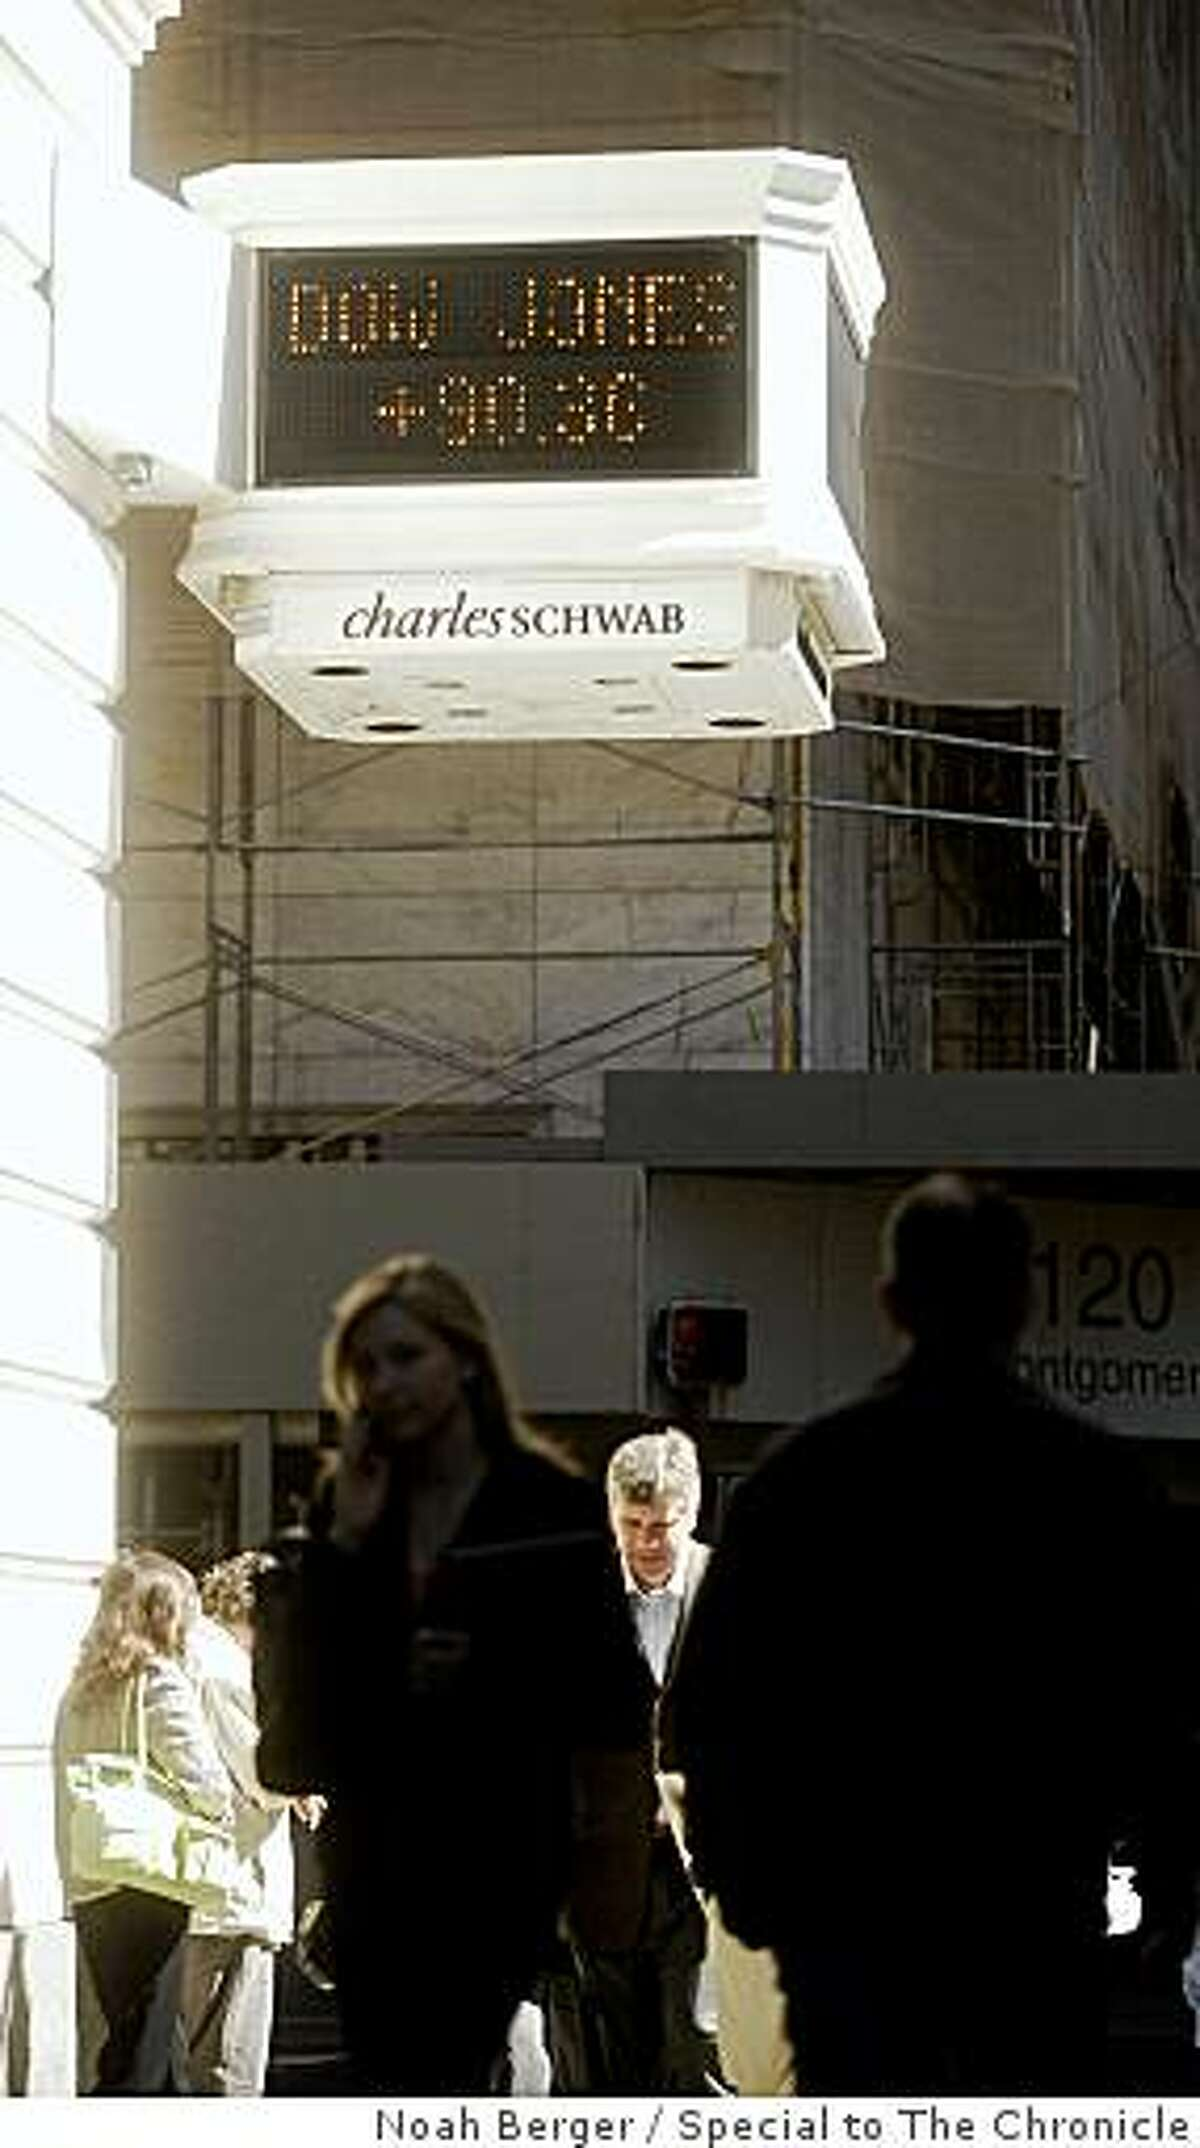 Pedestrians pass a ticker display outside Charles Schwab?s San Francisco offices on Monday, March 17, 2008. BY NOAH BERGER/SPECIAL TO THE CHRONICLE